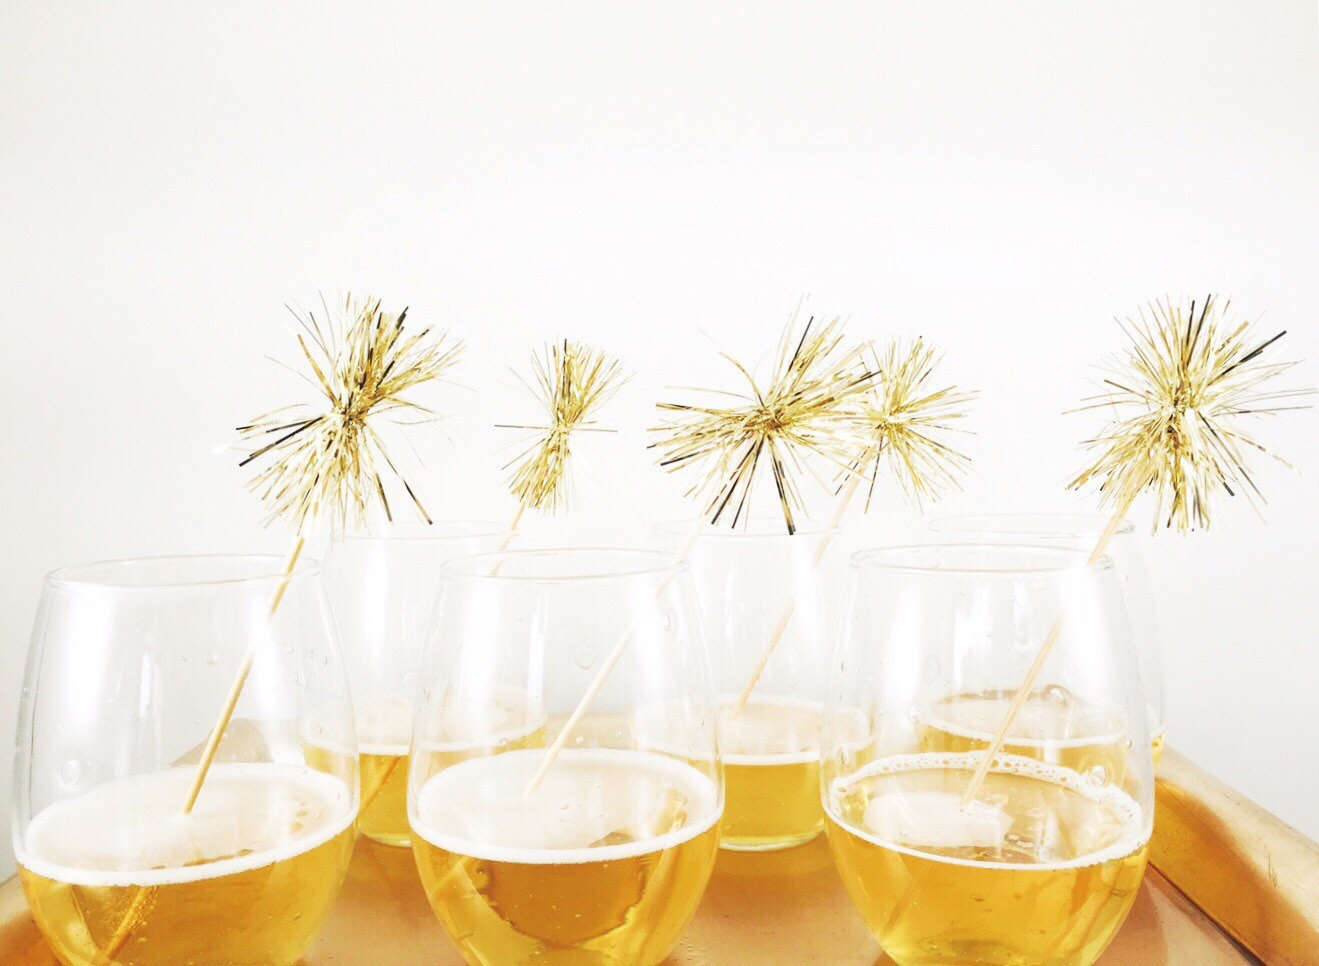 RX_1612_New Years Decorations_Gold Tinsel Drink Stirrers